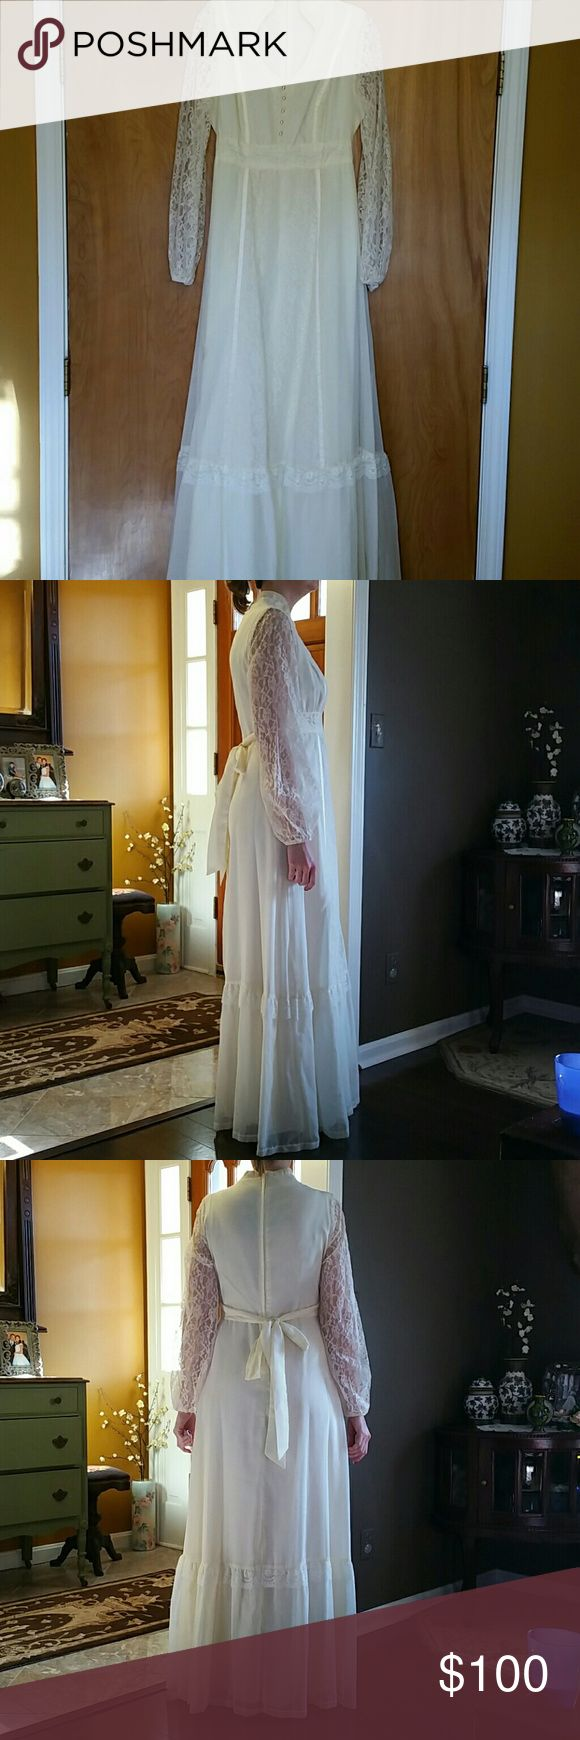 Vintage linen and lace cream ivory wedding dress 6 This is a beautiful pre loved handmade linen and lace dress. Perfect for a country wedding or vow renewal. Also is very boho. Model is size 6 34 bust. Zips in back and has tie. This is vintage so it comes with small imperfections see pic 4 for the only small brown spot barely noticeable and i have not tried to clean because this dress is gorgeous vintage  Dresses